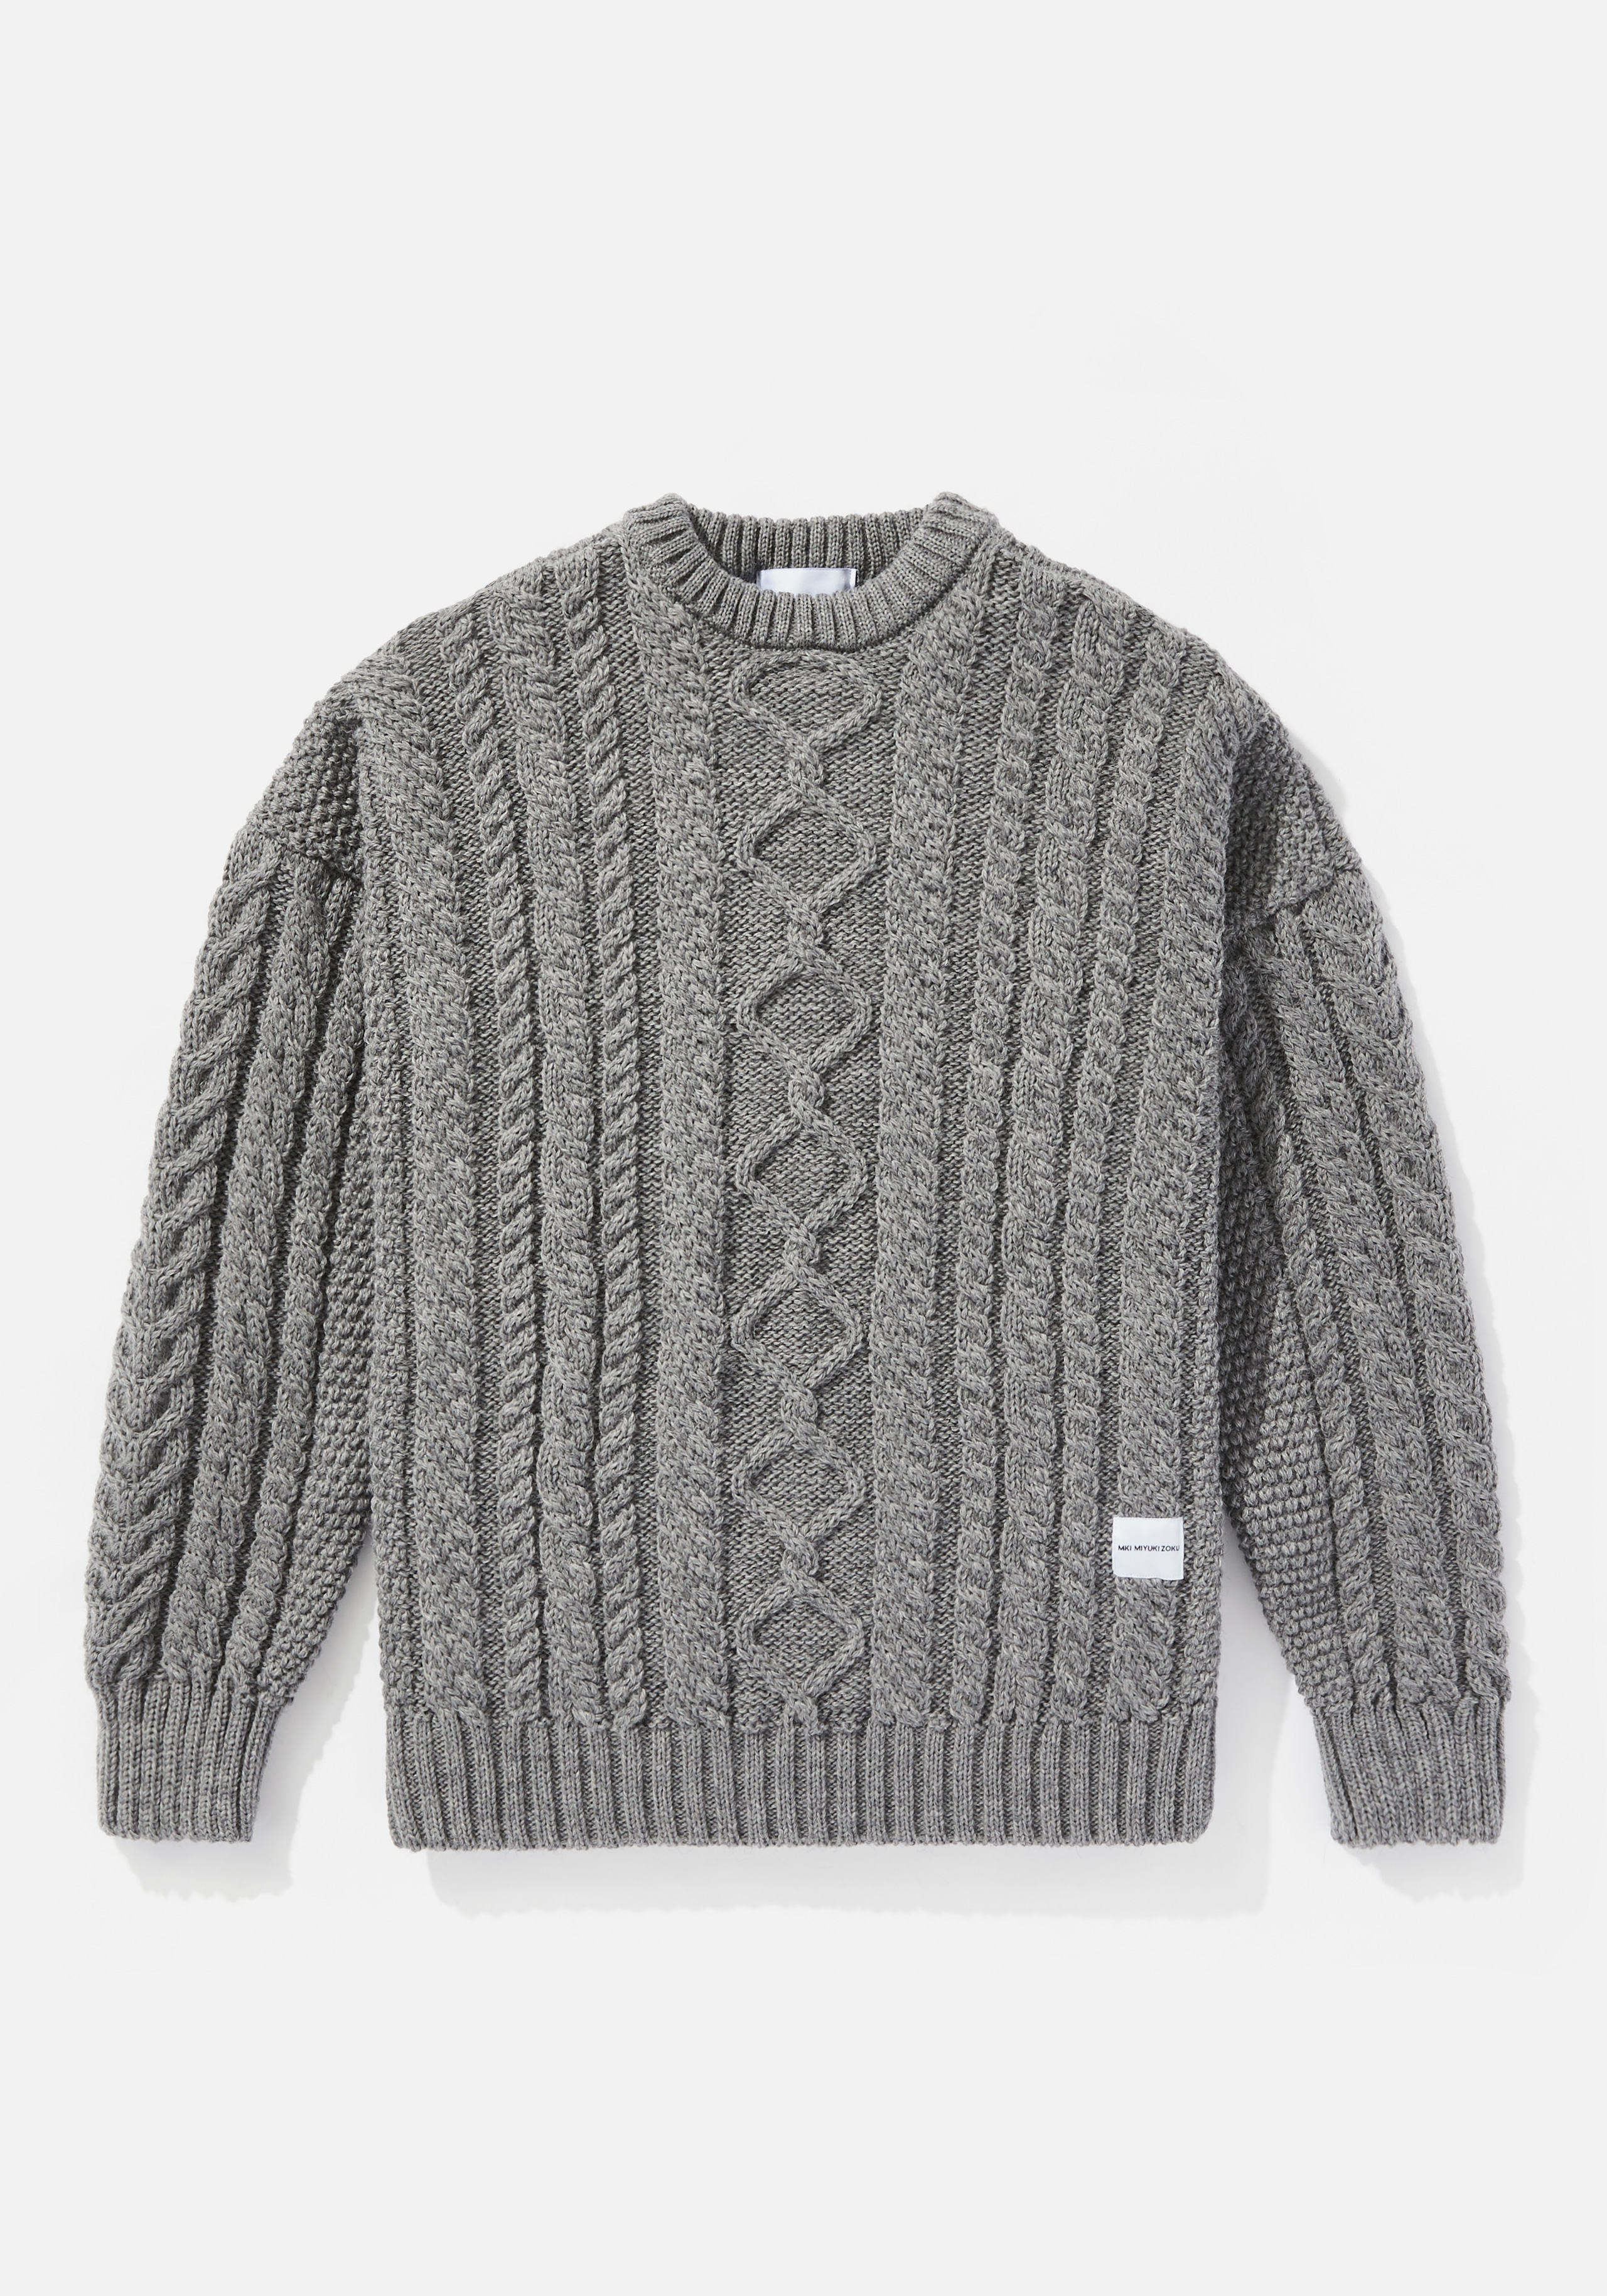 mki aran knit sweater 1